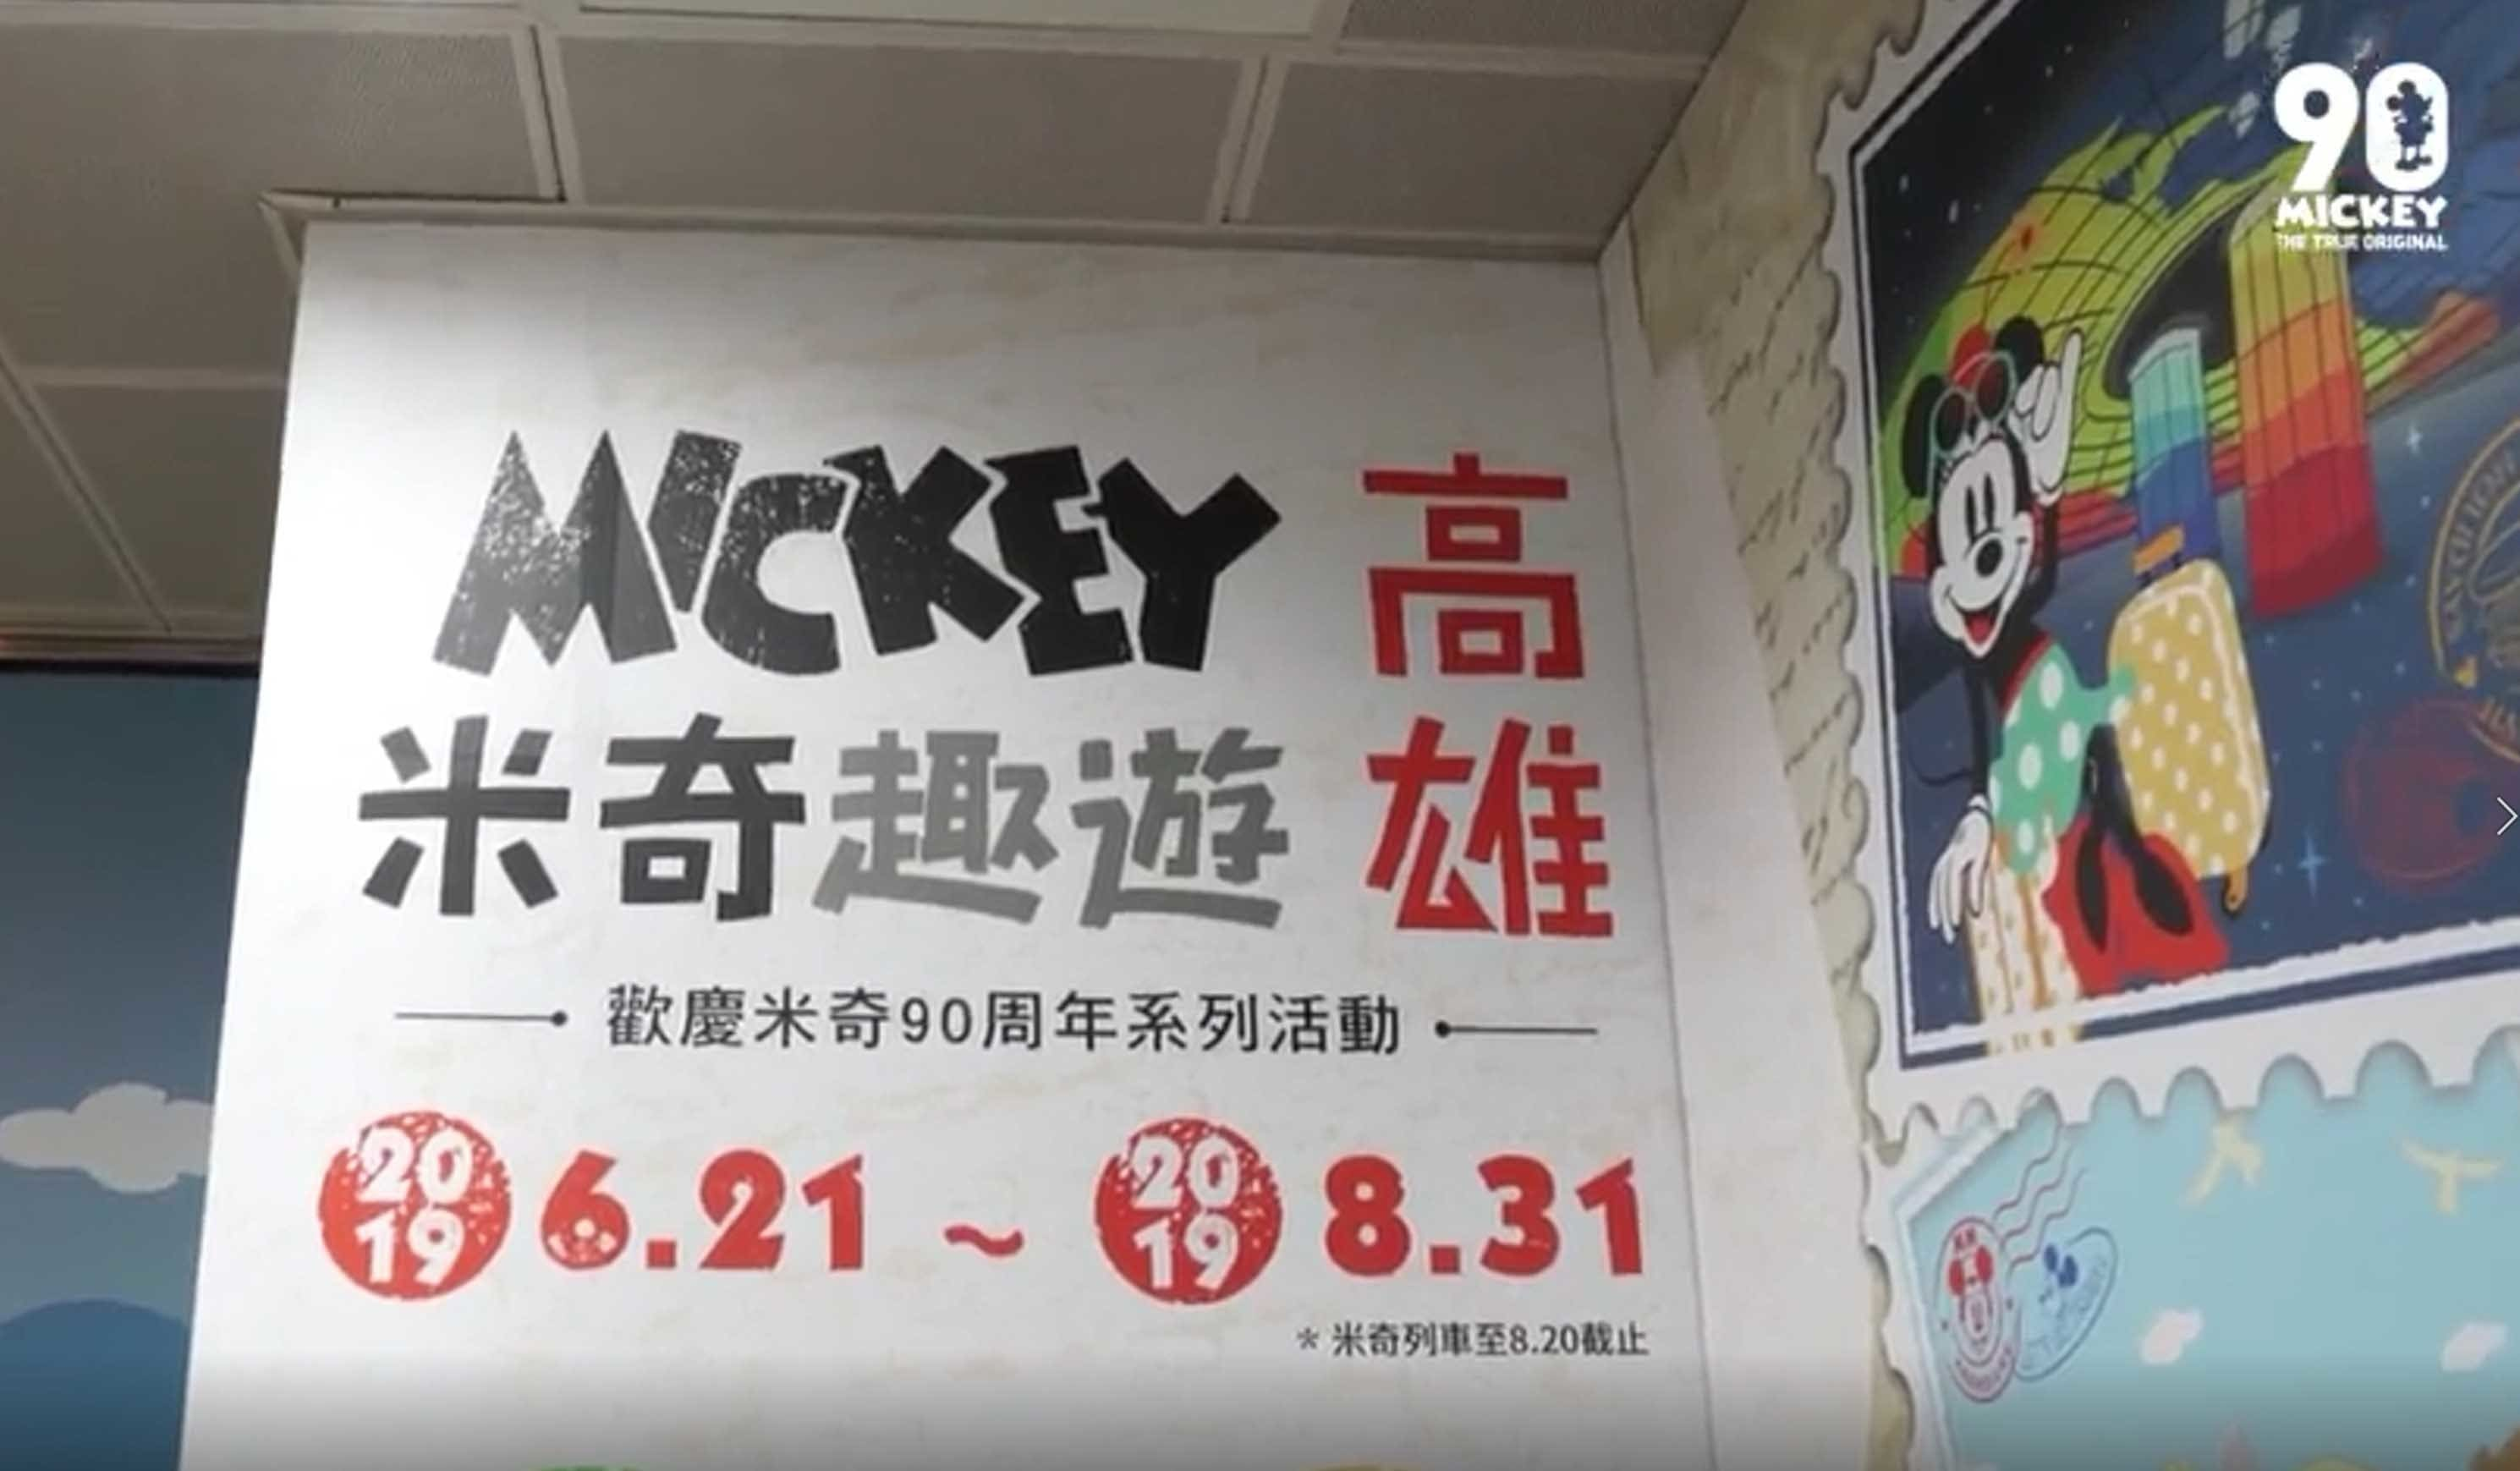 Finding Mickey Kaohsiung | Video01